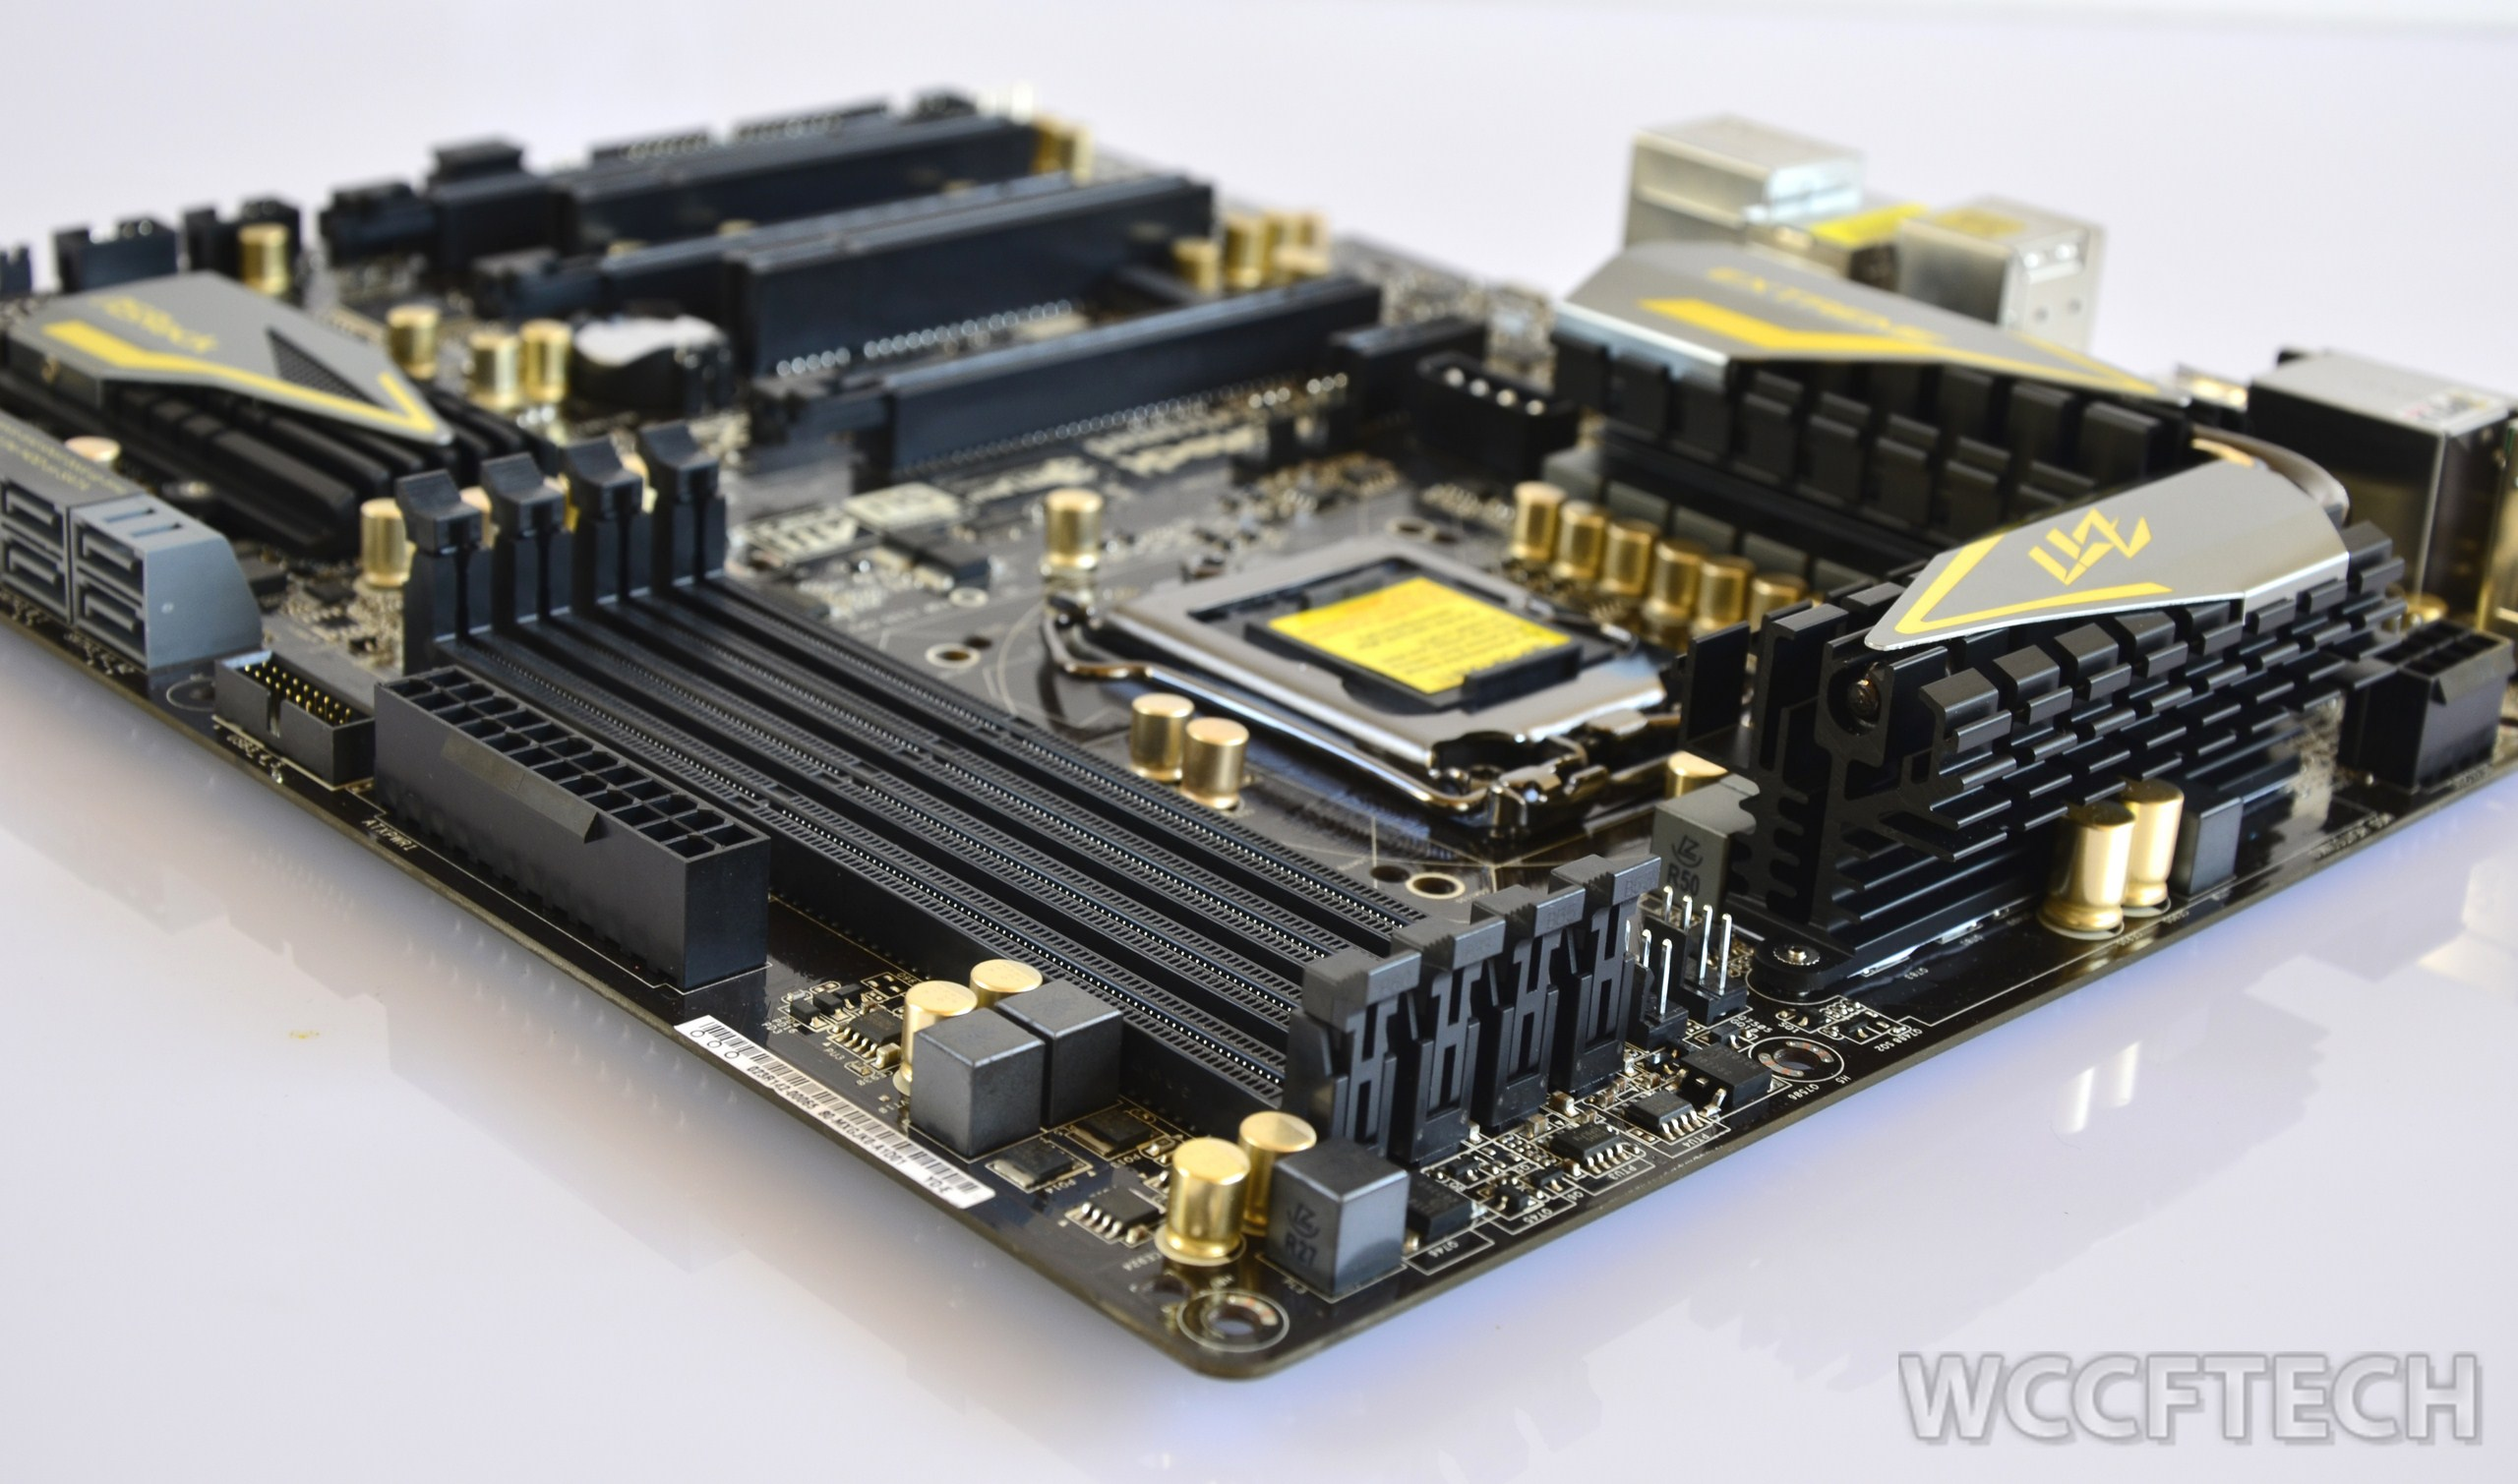 Asrock Z77 Extreme6 Review Mainboard Lga 775 I945 Off Board Four